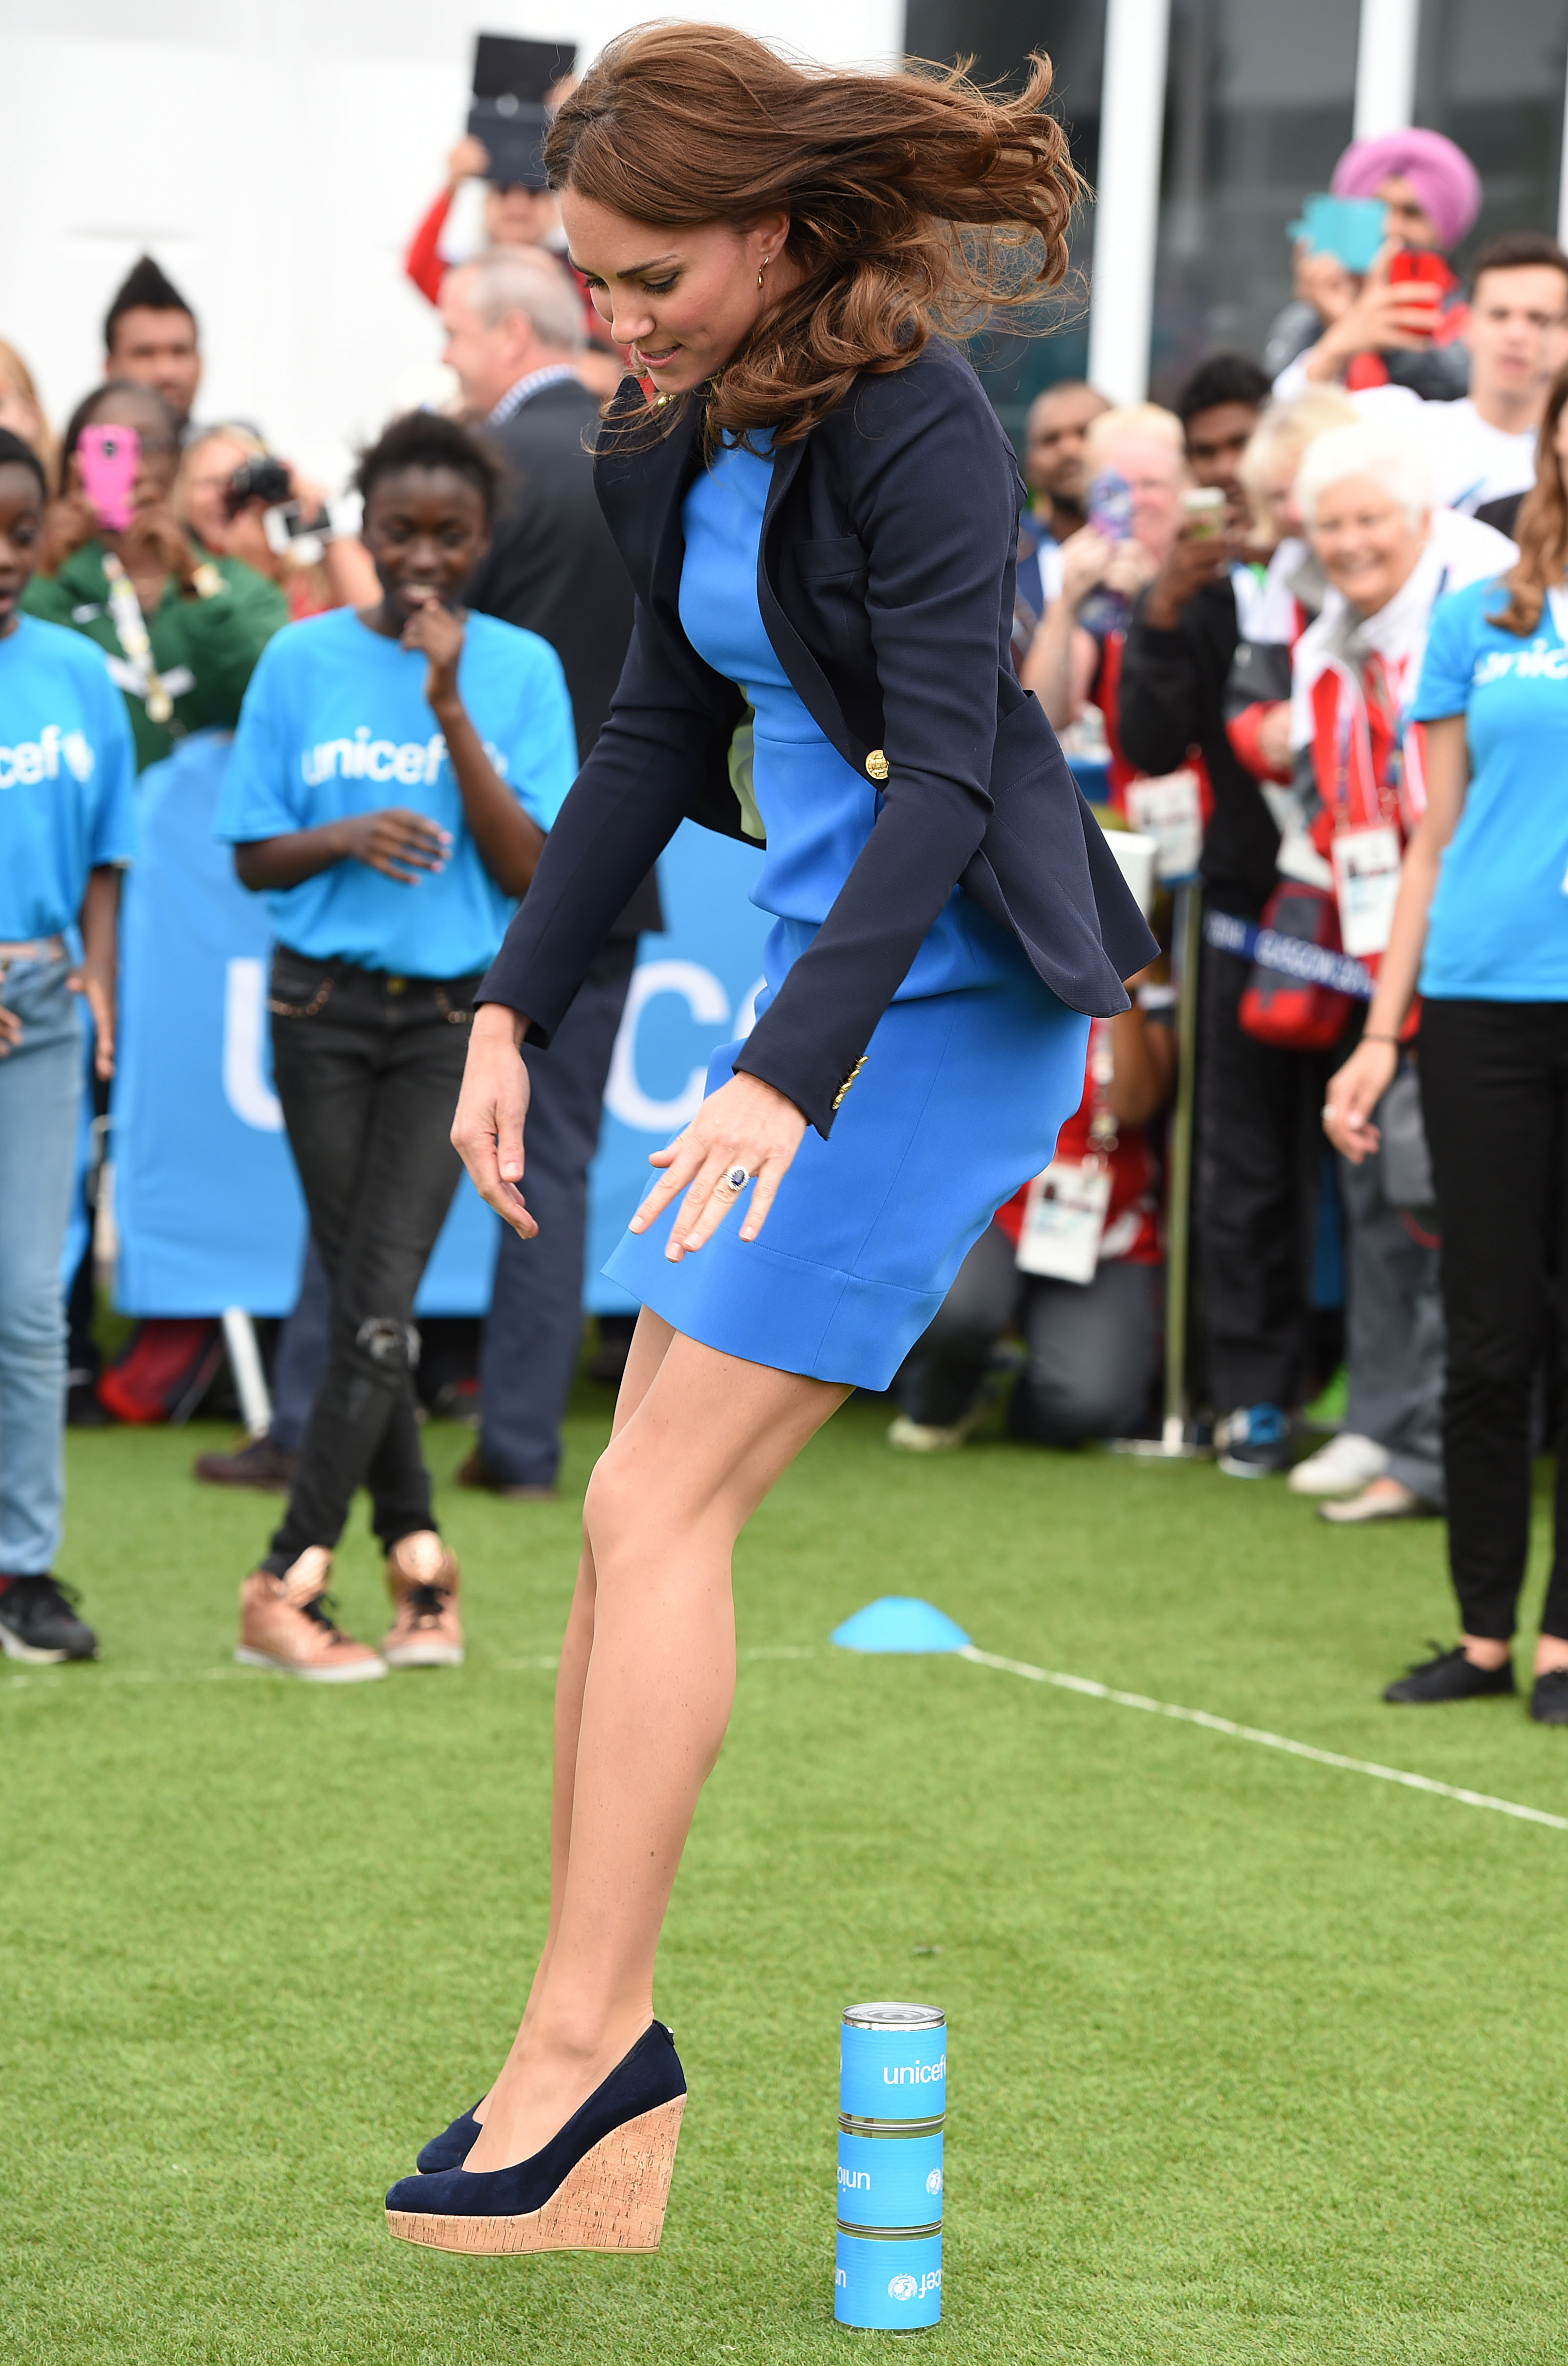 The Duchess of Cambridge takes part in a number of games with children from UNICEF during a visit to the Athletes Village at the Commonwealth Games in Glasgow today.